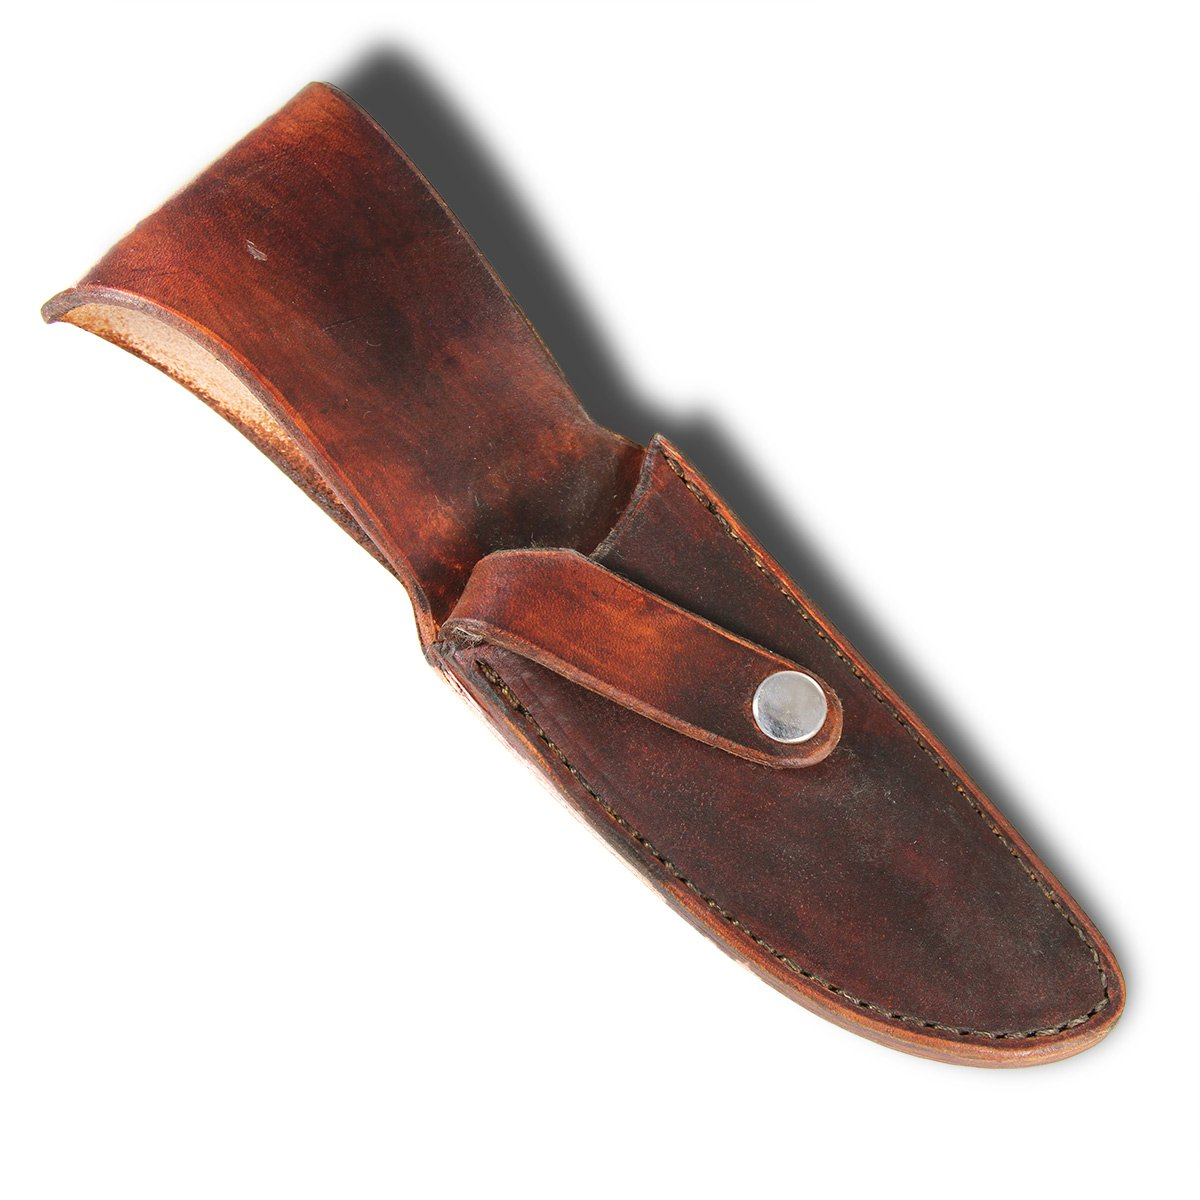 Finished Sheath Style #8 - Brown Leather - for knives with blades up to 1 1/4'' x 4 1/4'' by MKS Leatherworks